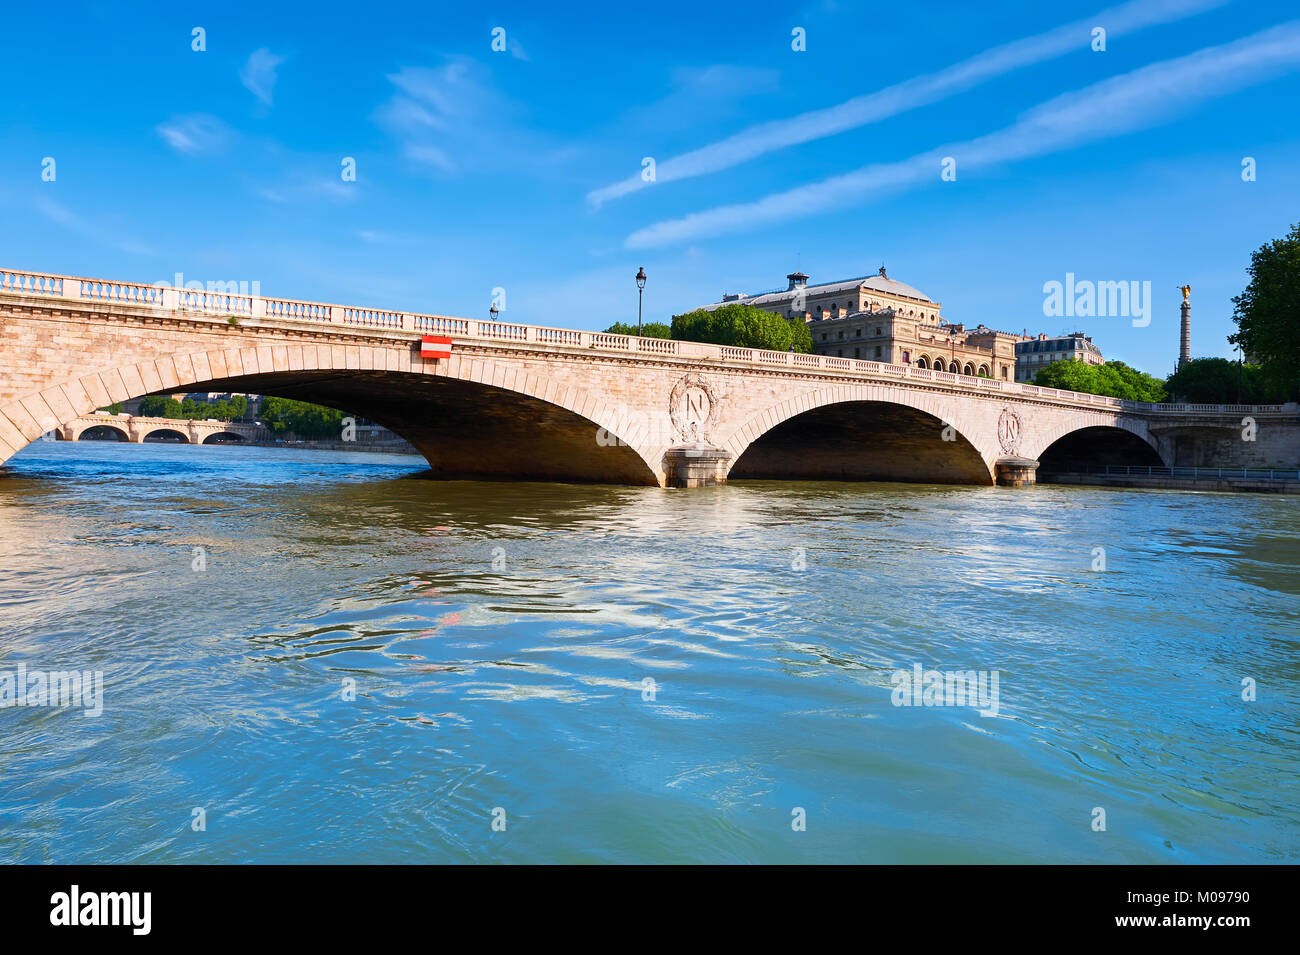 Paris, France. The Pont au Change connecting island Ile de la Cite with the Right Bank on a bright day. - Stock Image